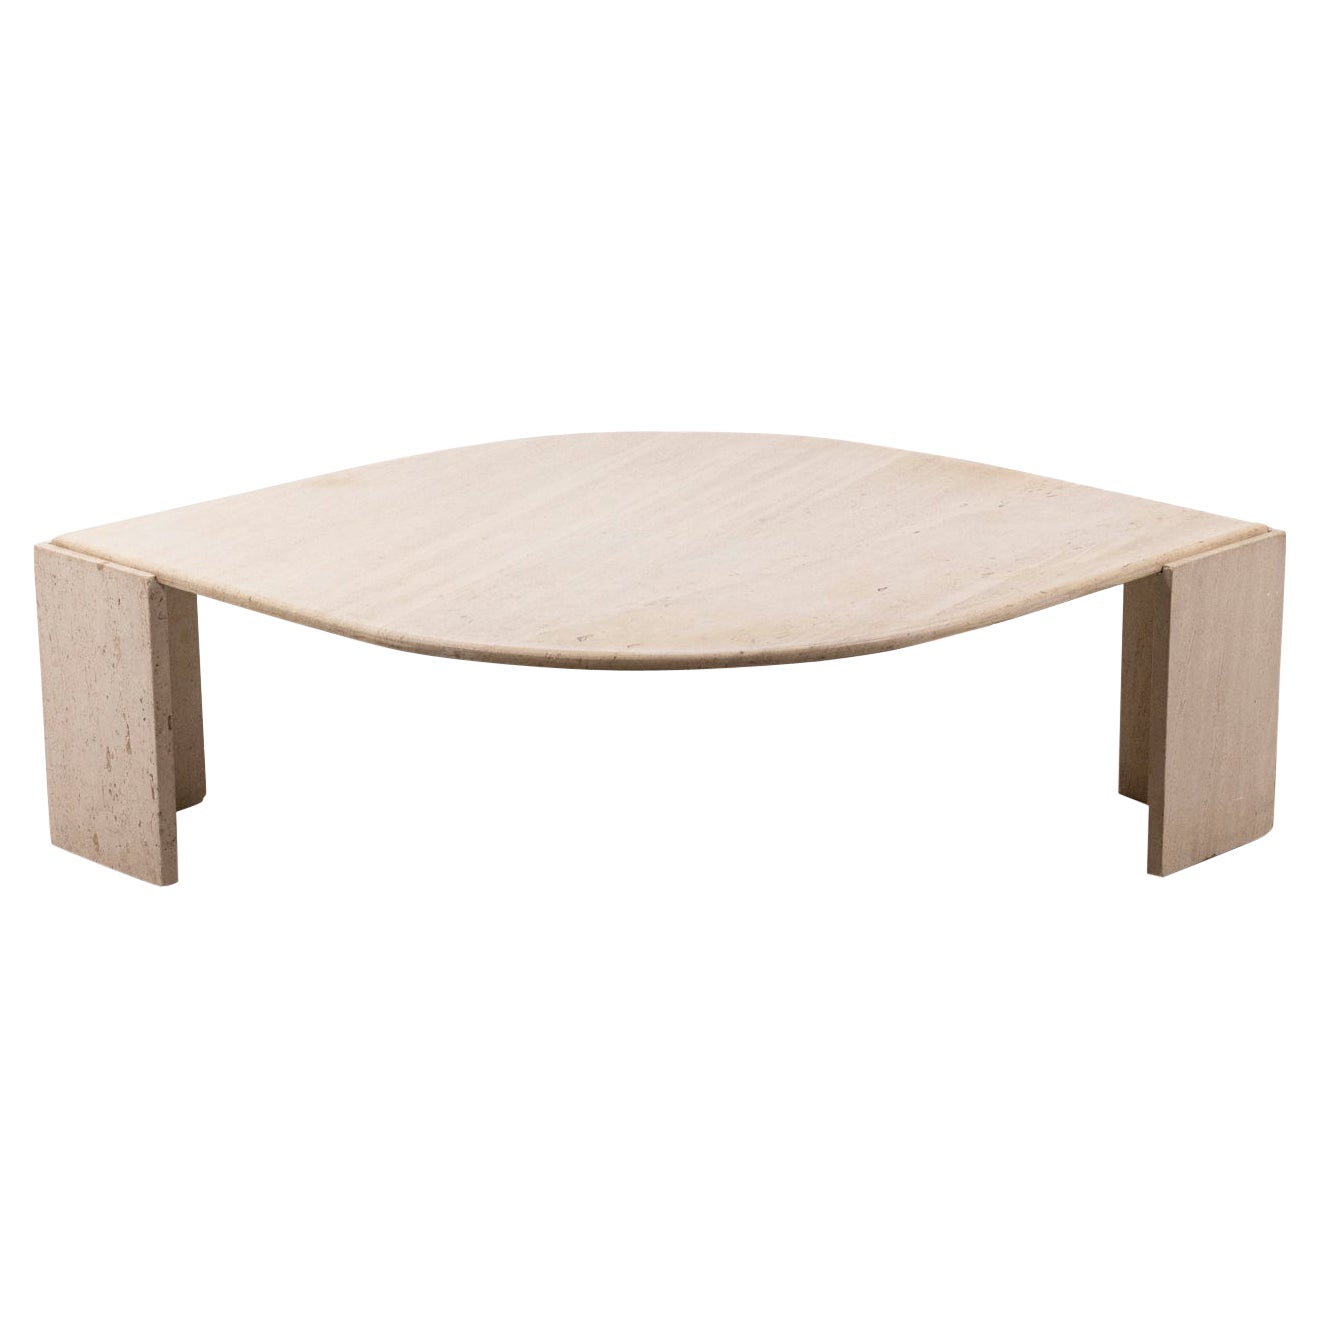 Coffee Table in Travertine, 1970s